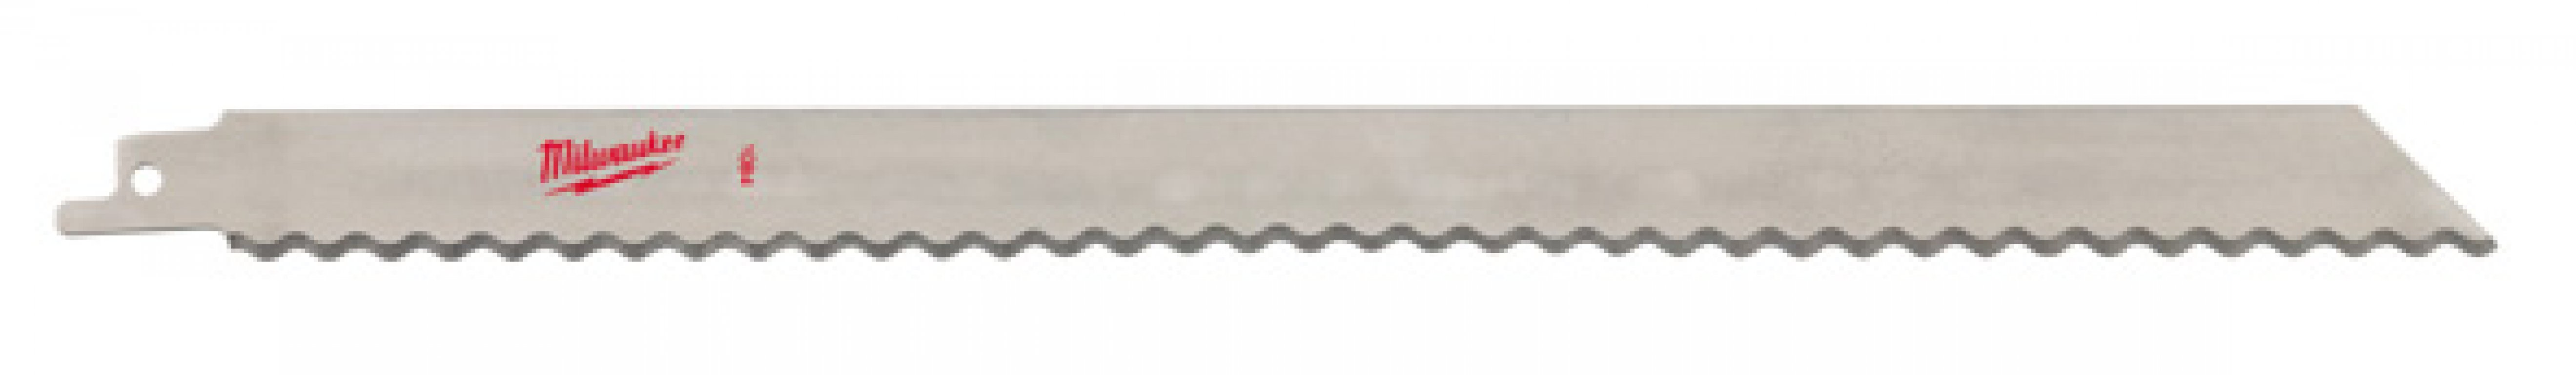 Replacement saw blades for Milwaukee cordless sabre saw